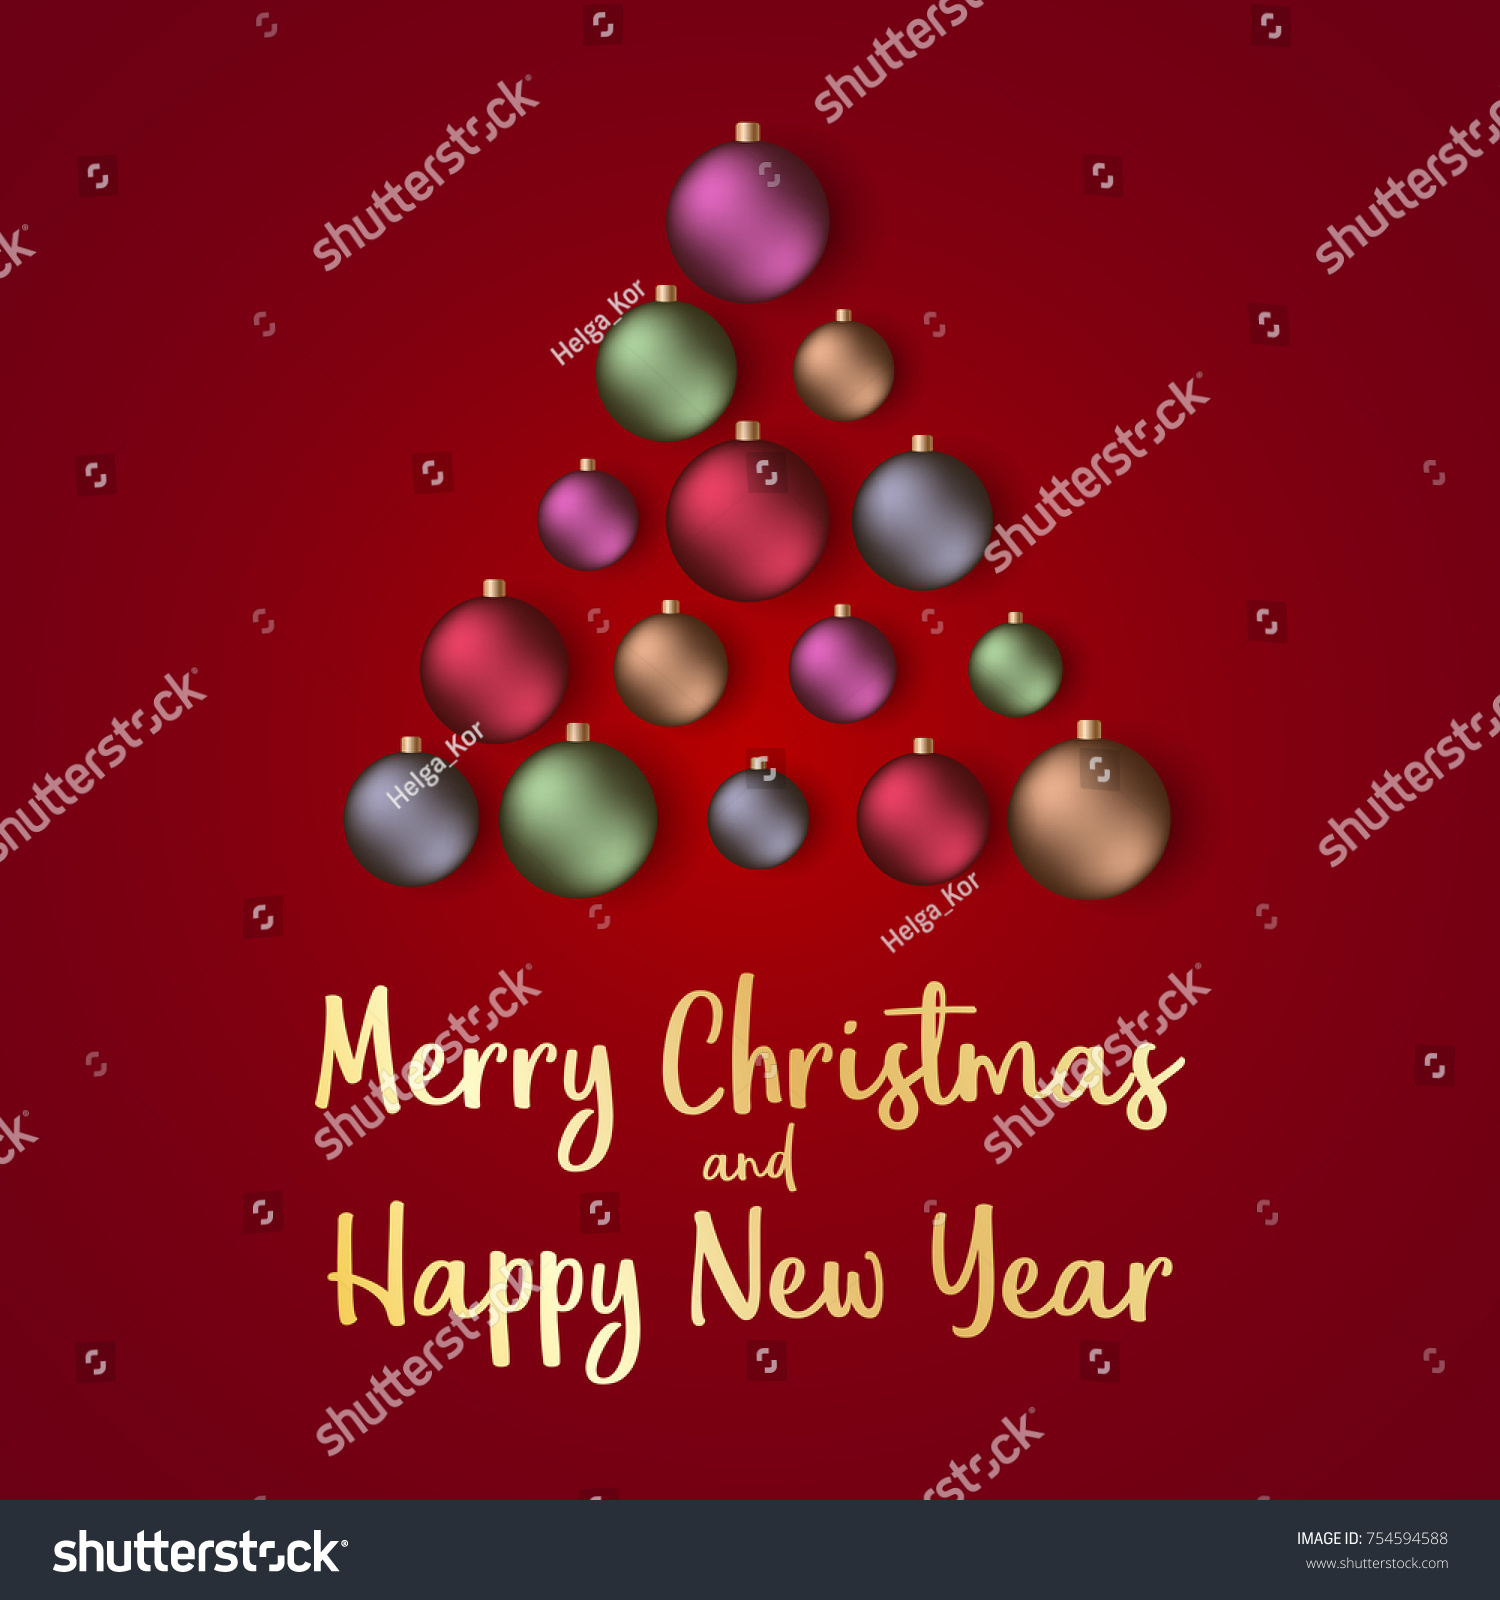 Merry christmas happy new year 2018 stock vector 754594588 merry christmas and happy new year 2018 greeting card vector illustration kristyandbryce Image collections